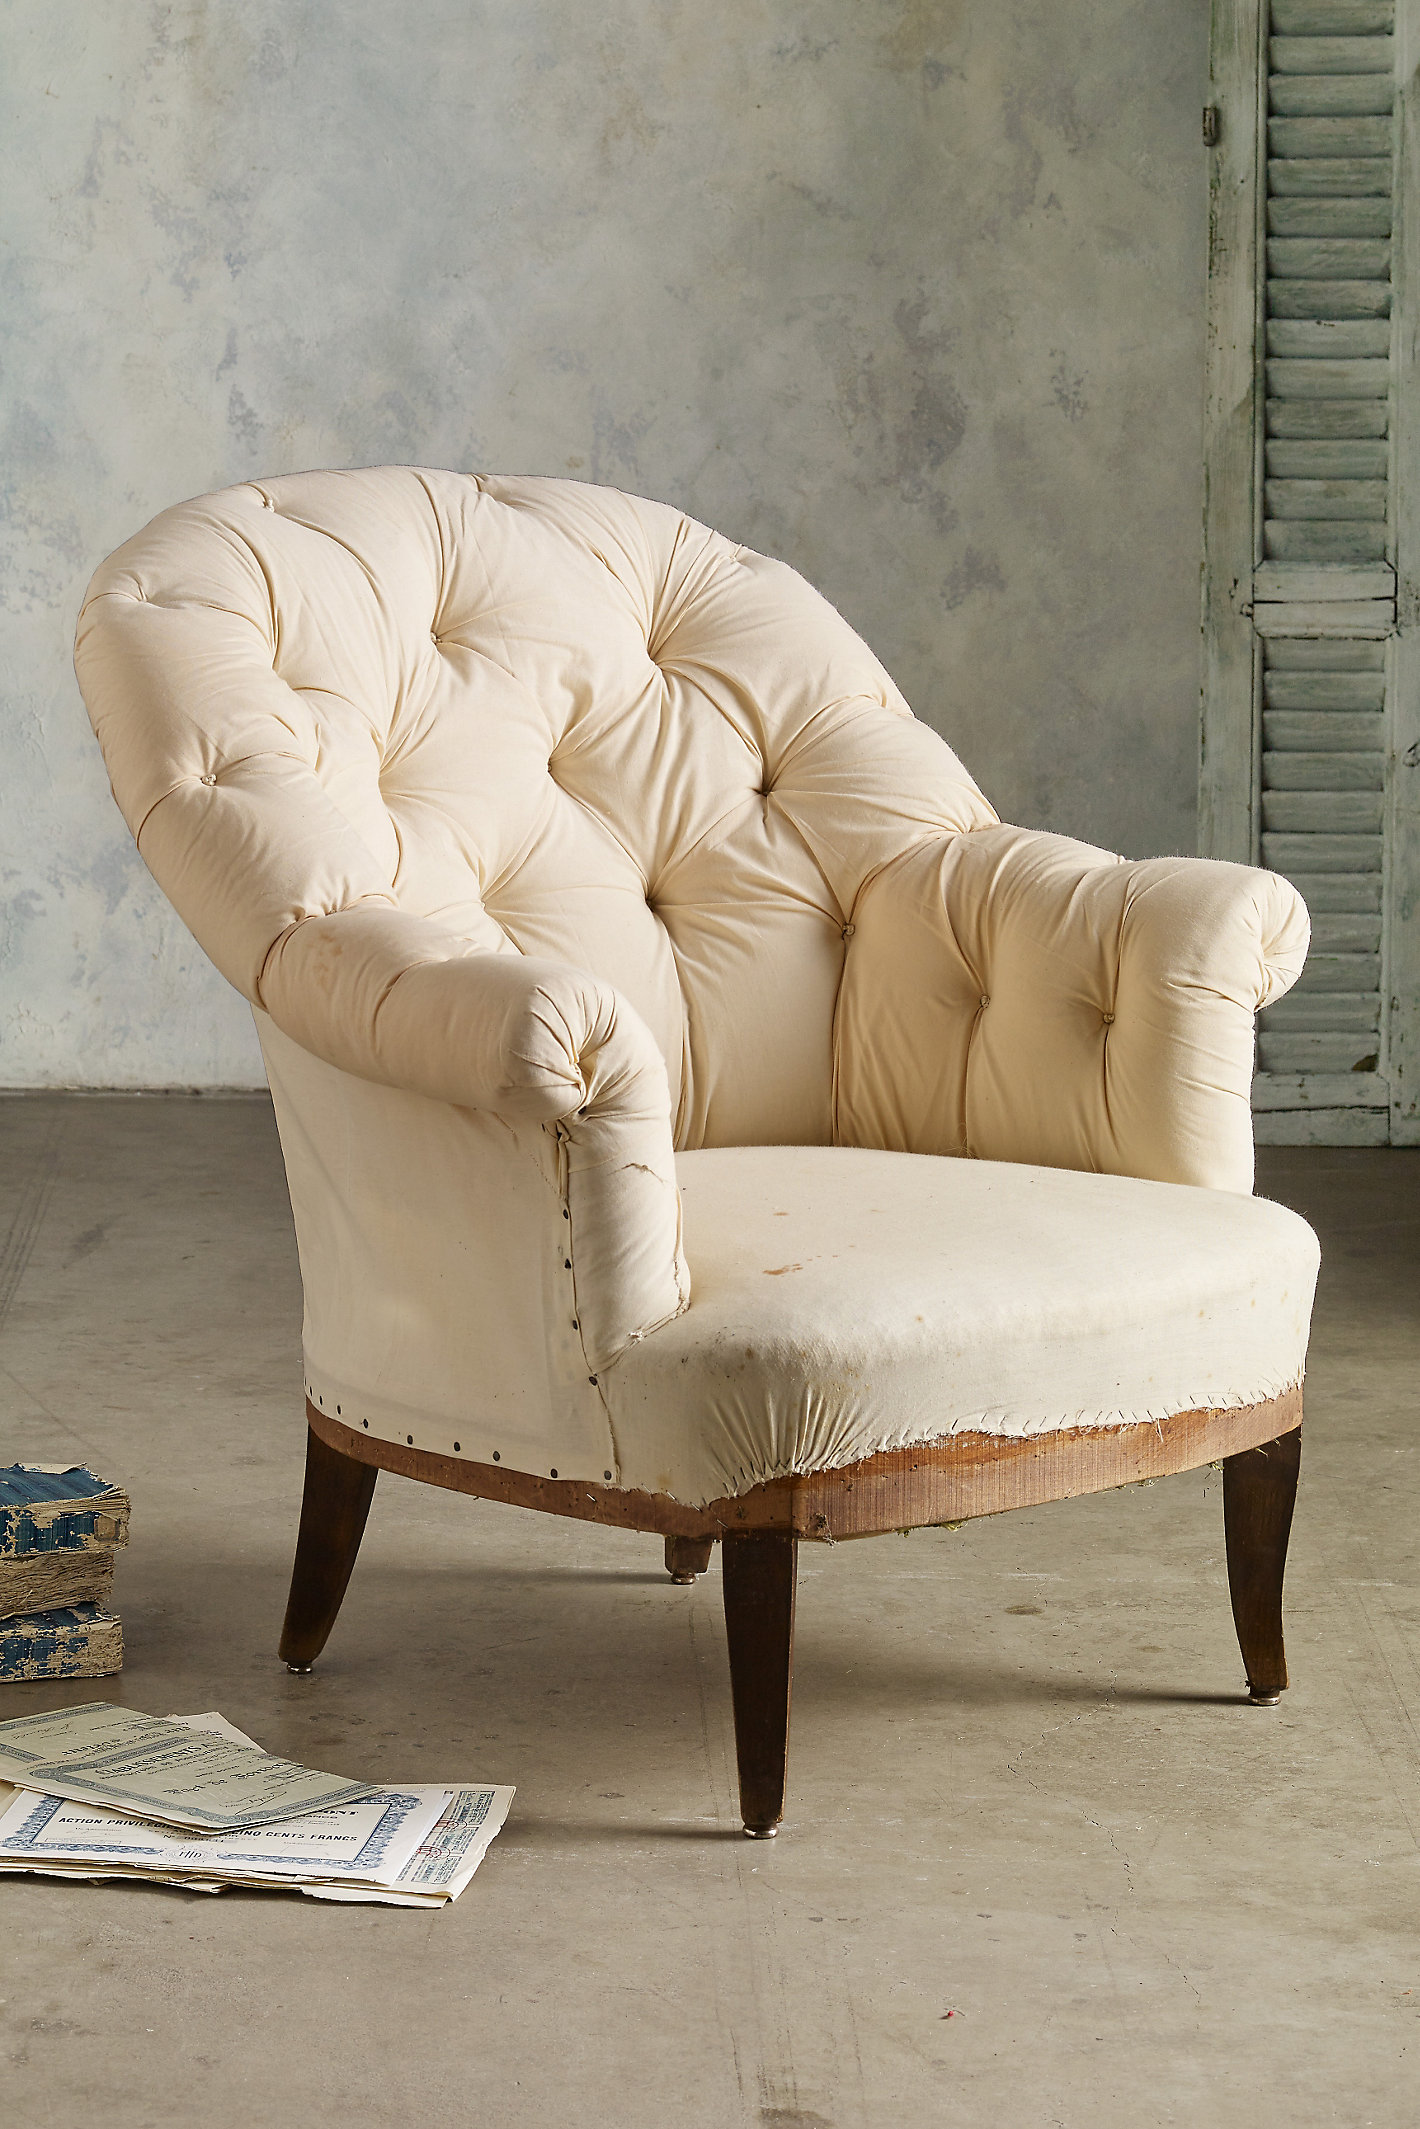 Tufted Bergere Chairs